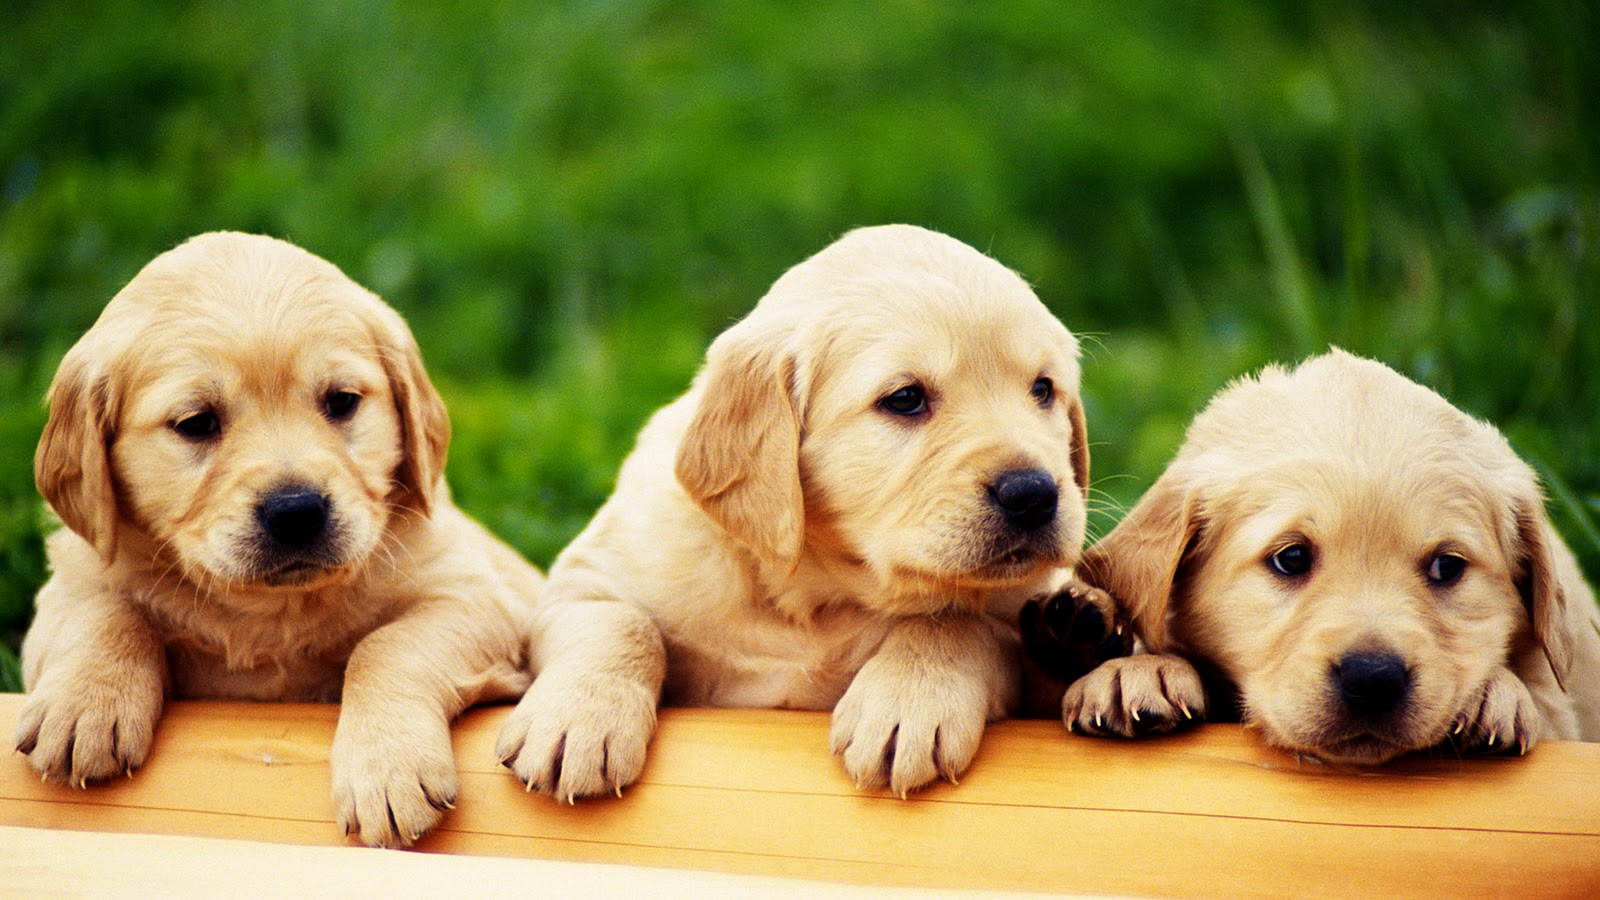 All About Puppies